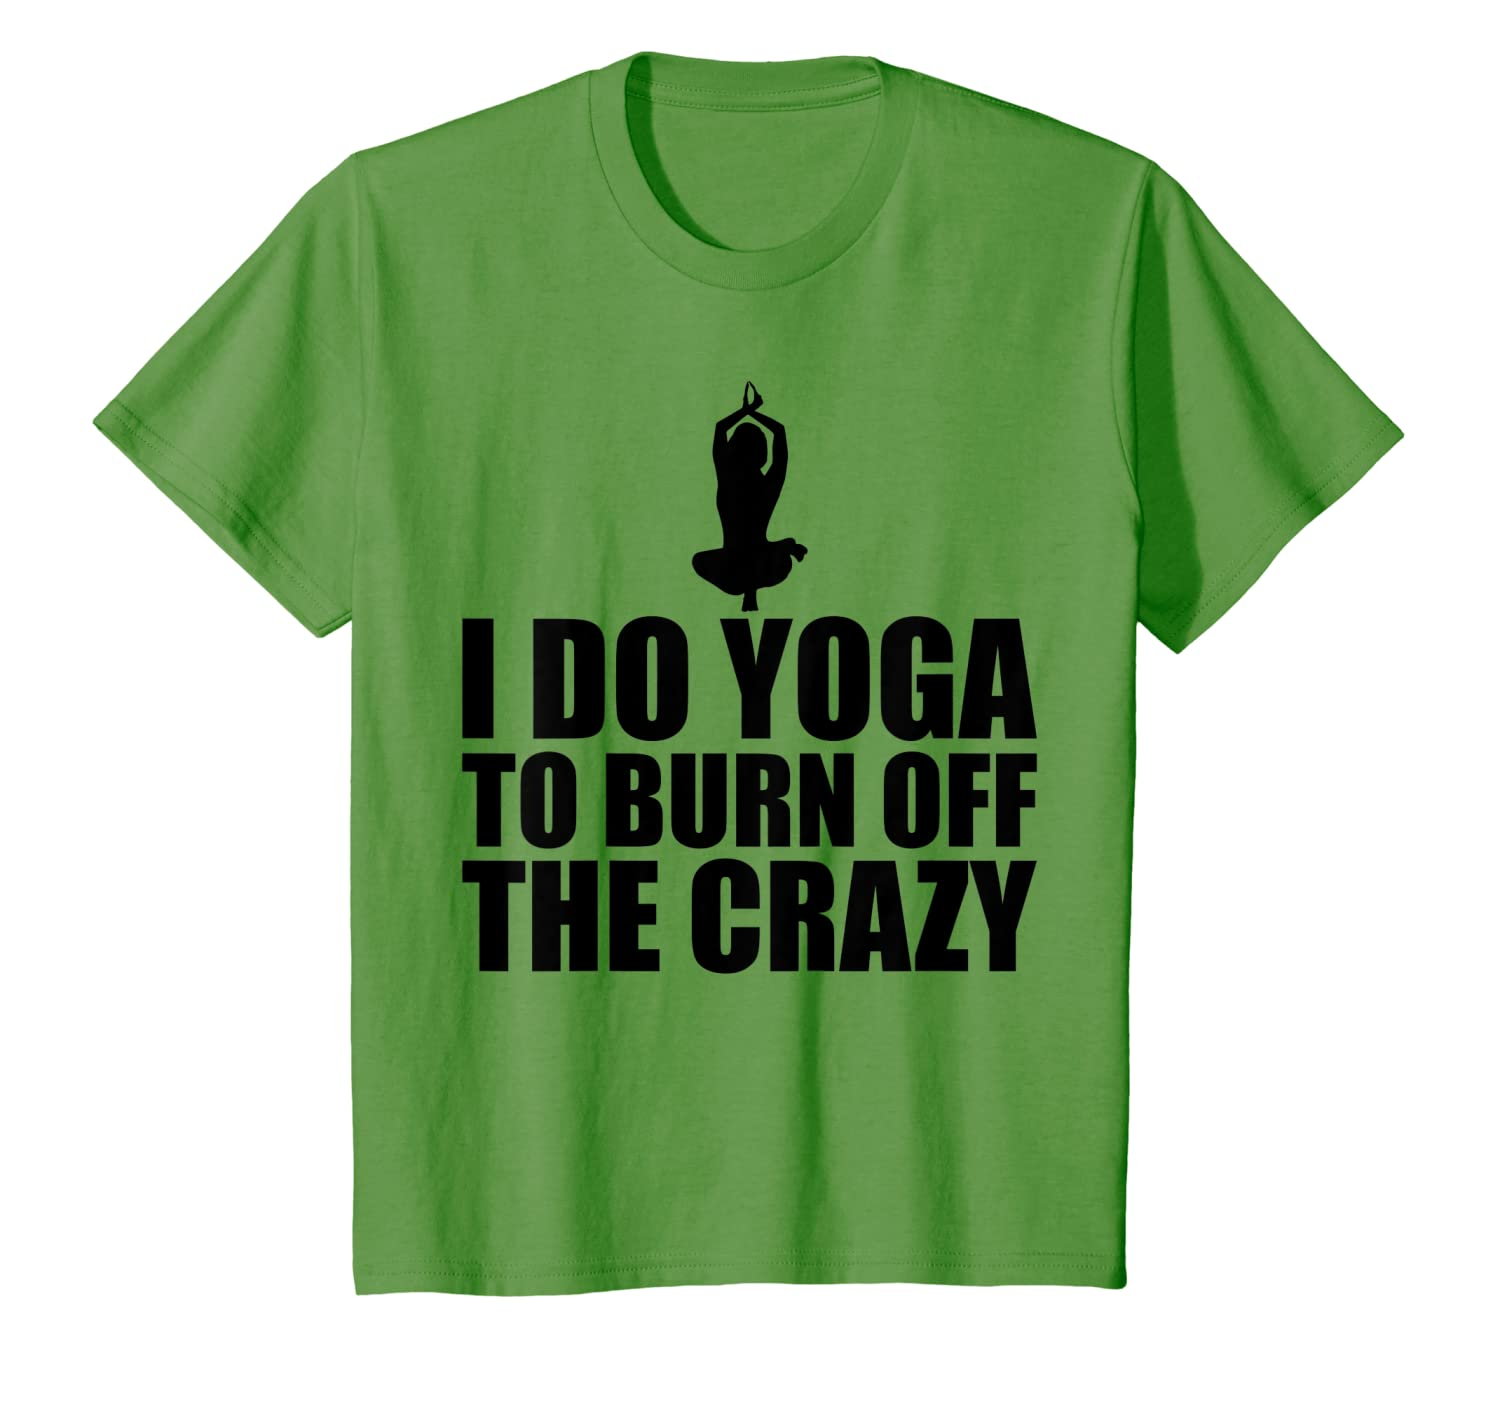 Amazon.com: I Do Yoga To Burn Off The Crazy T-Shirt: Clothing